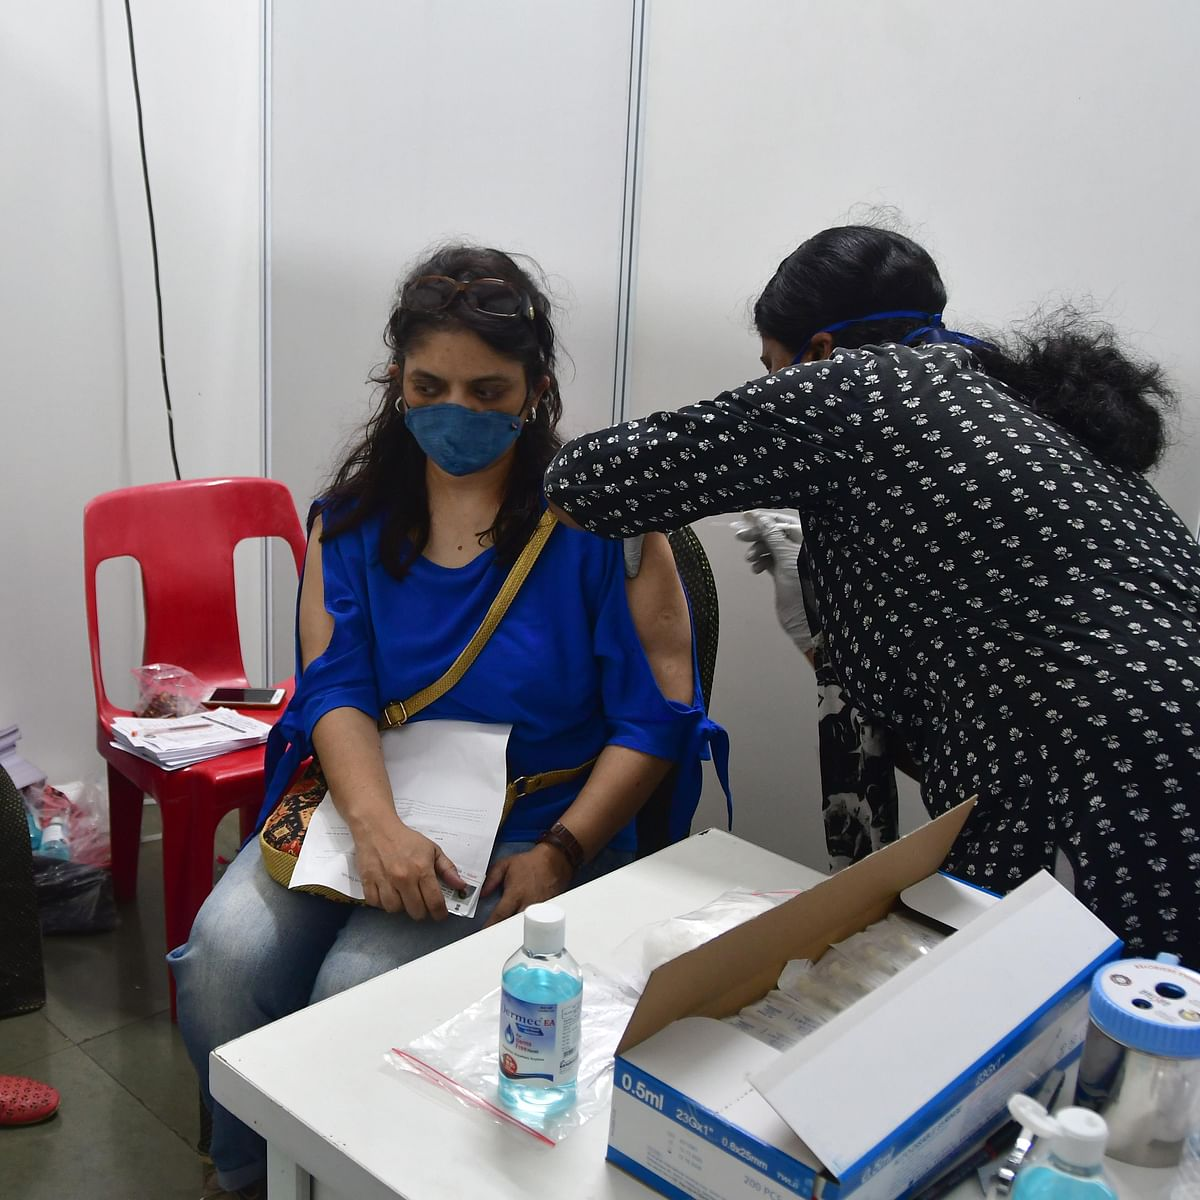 FPJ Legal: Bombay HC gives last chance to Union govt to file affidavit in fraud vaccination case